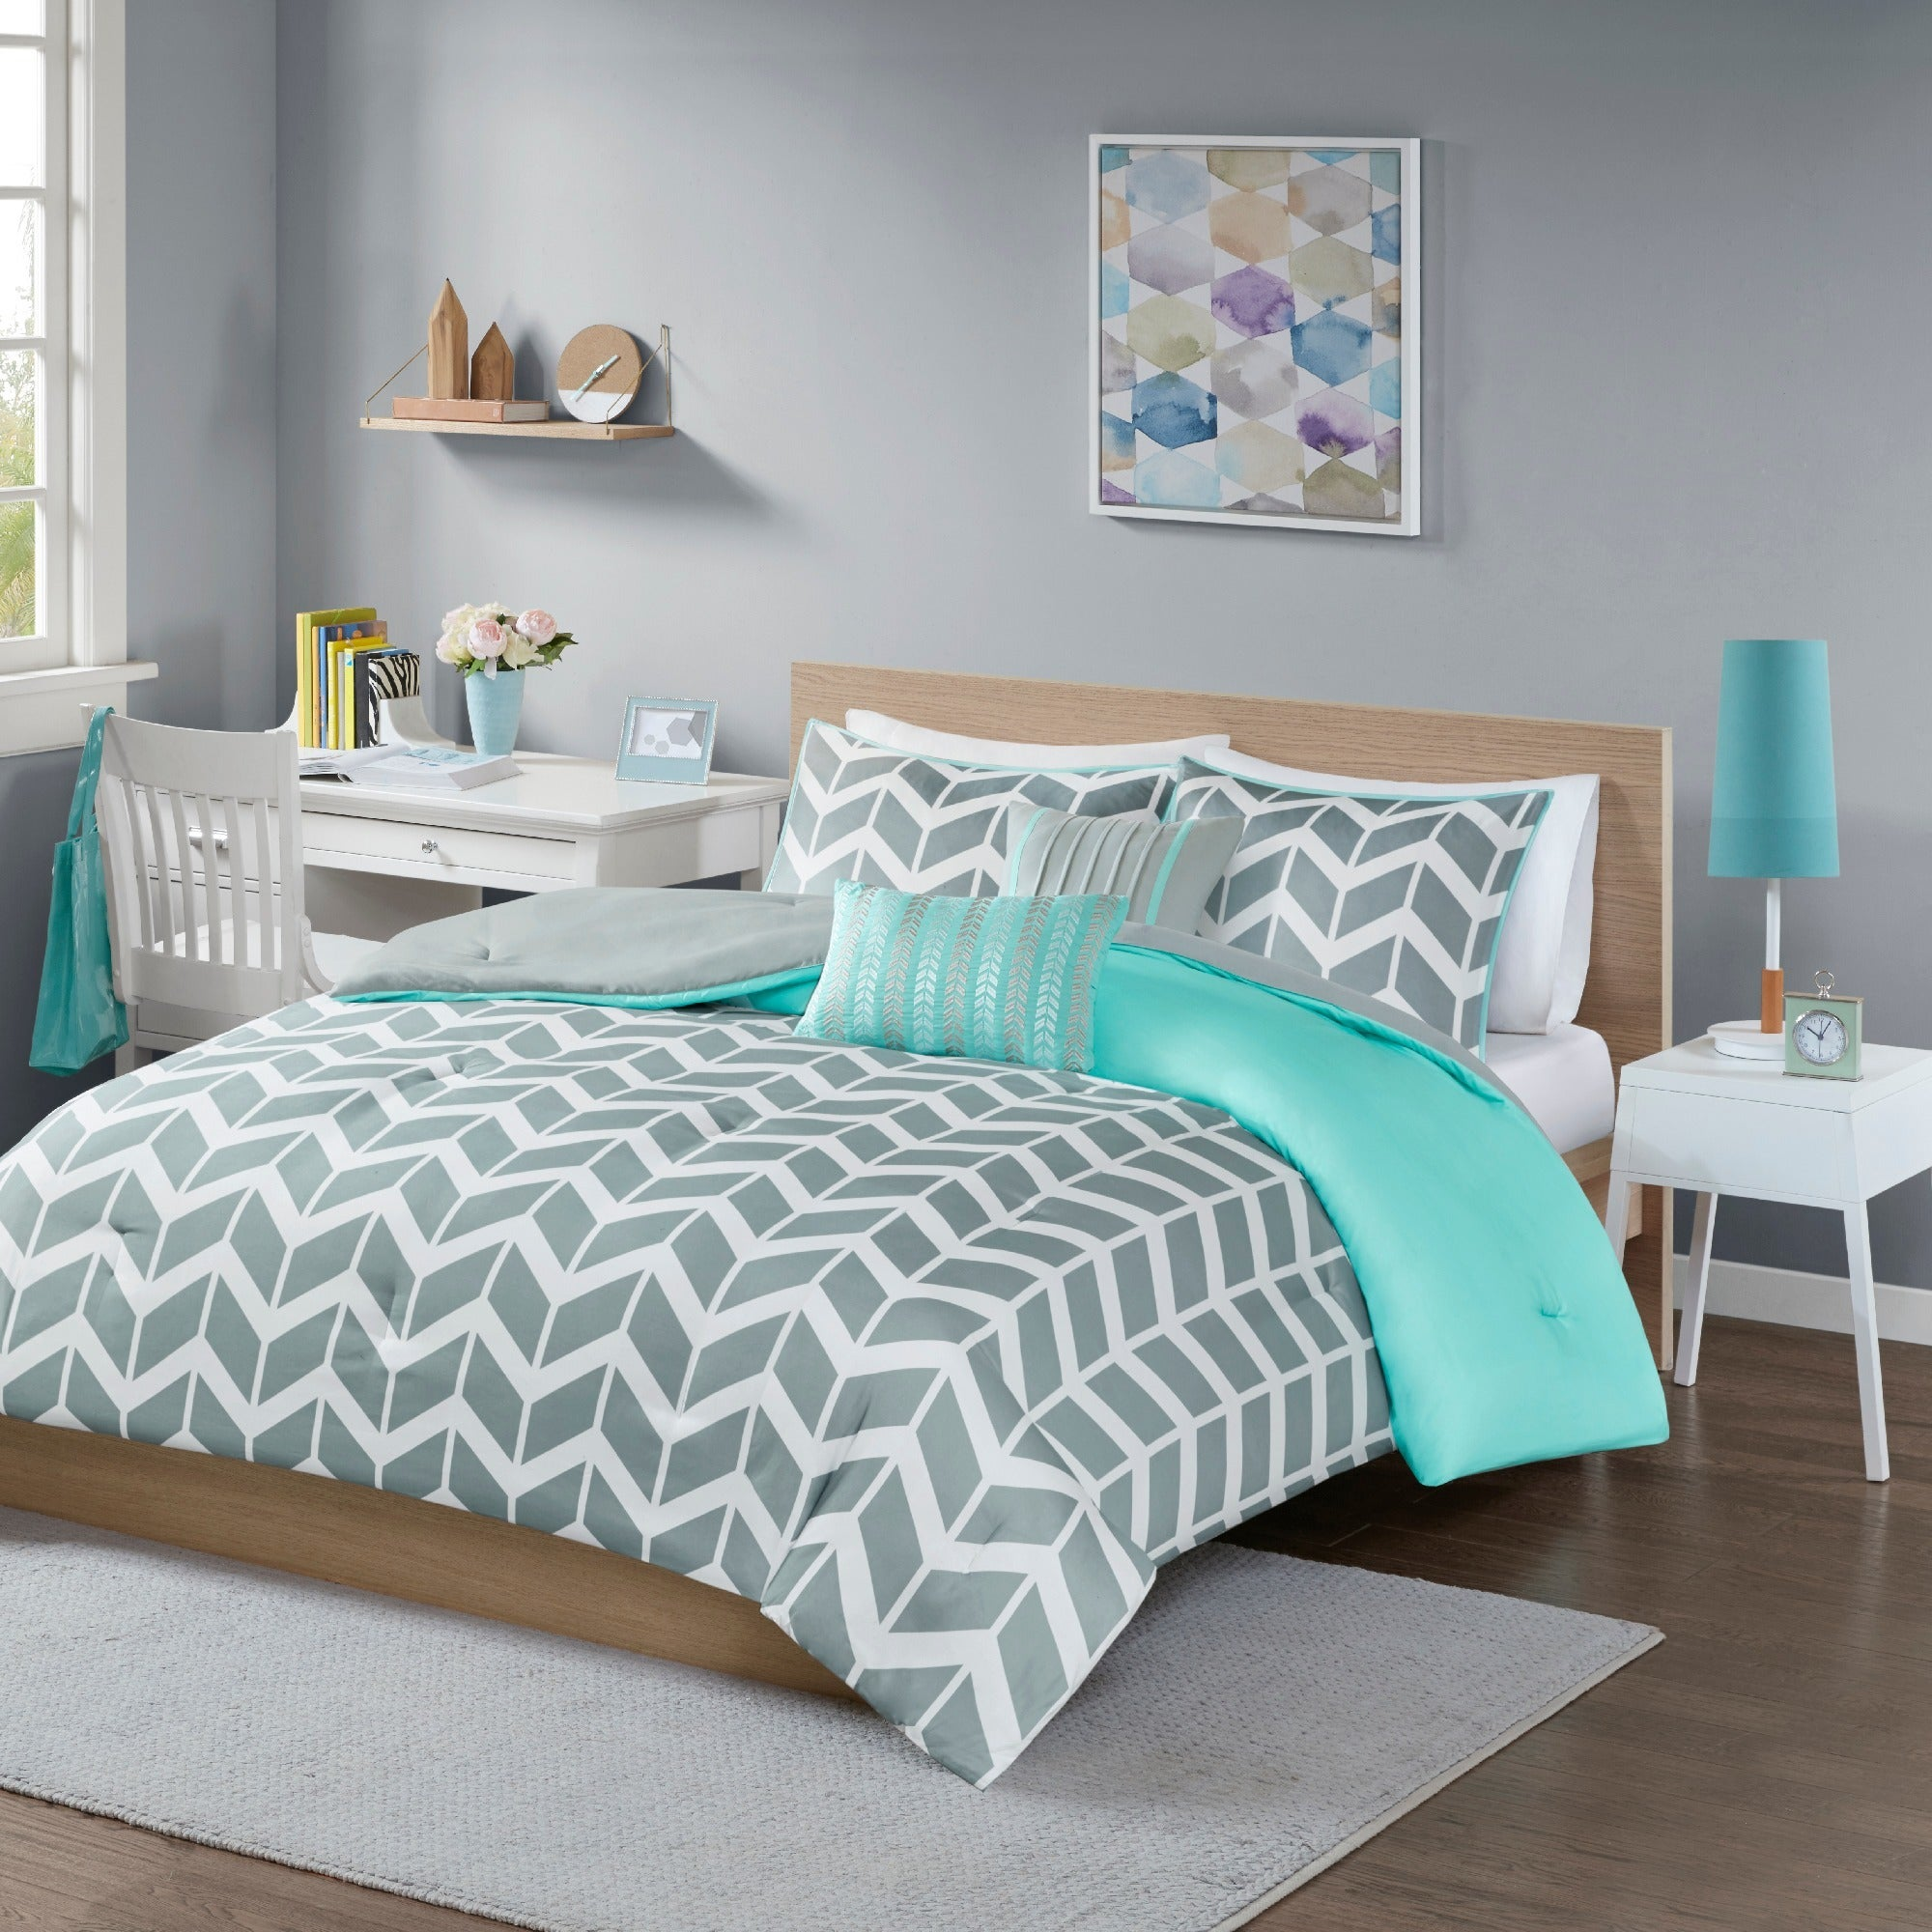 reviews rose wall wayfair set glass abbad sheets comforter aqua roserter bedroom outstanding tiffany bed teen blue bungalow baby comforters genuine queen photos sets floral bedding aside